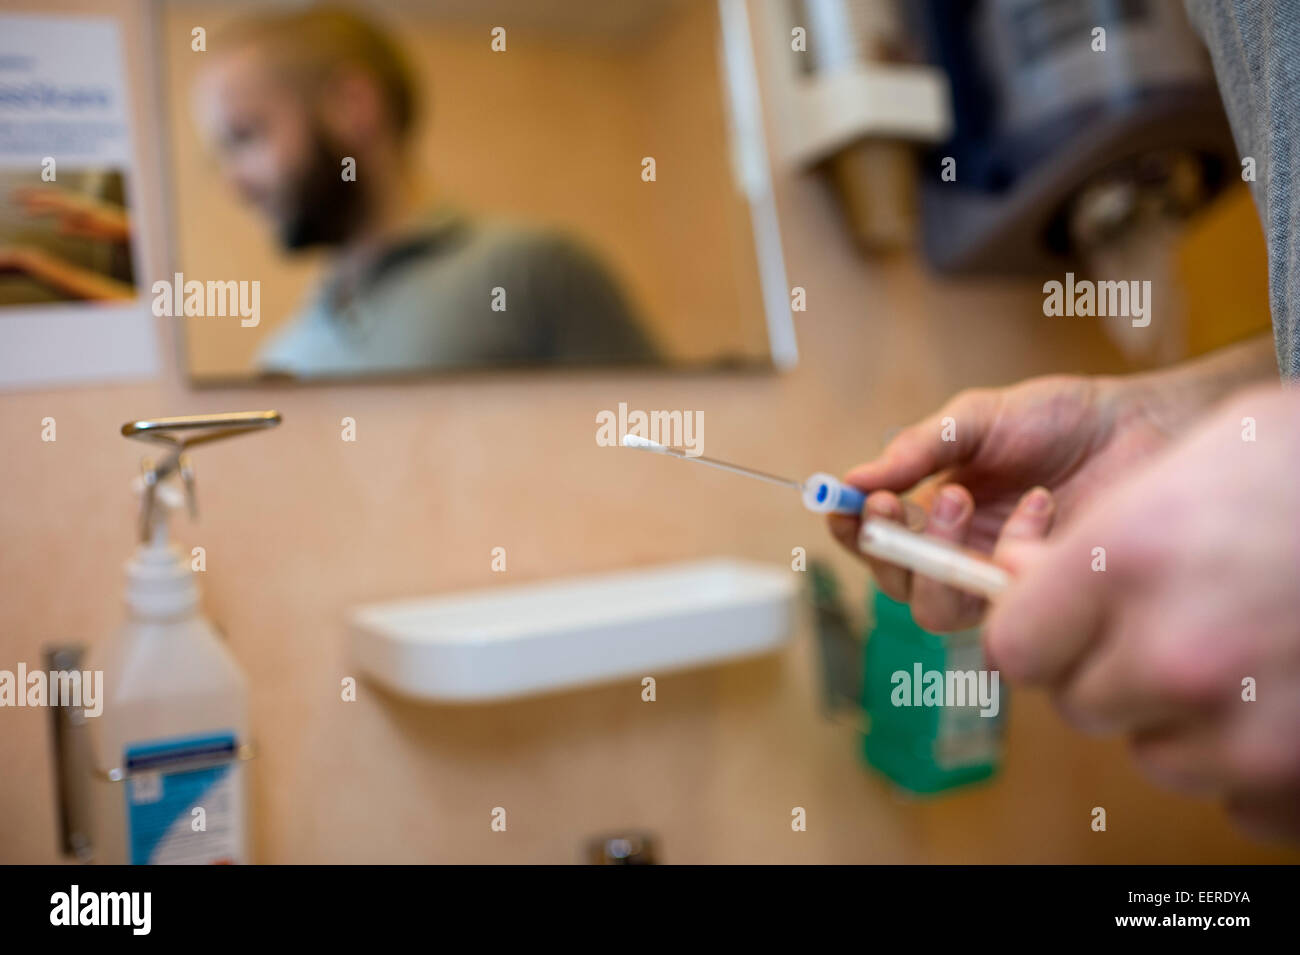 Controlling the bacterias in hospital after cleaning - Stock Image